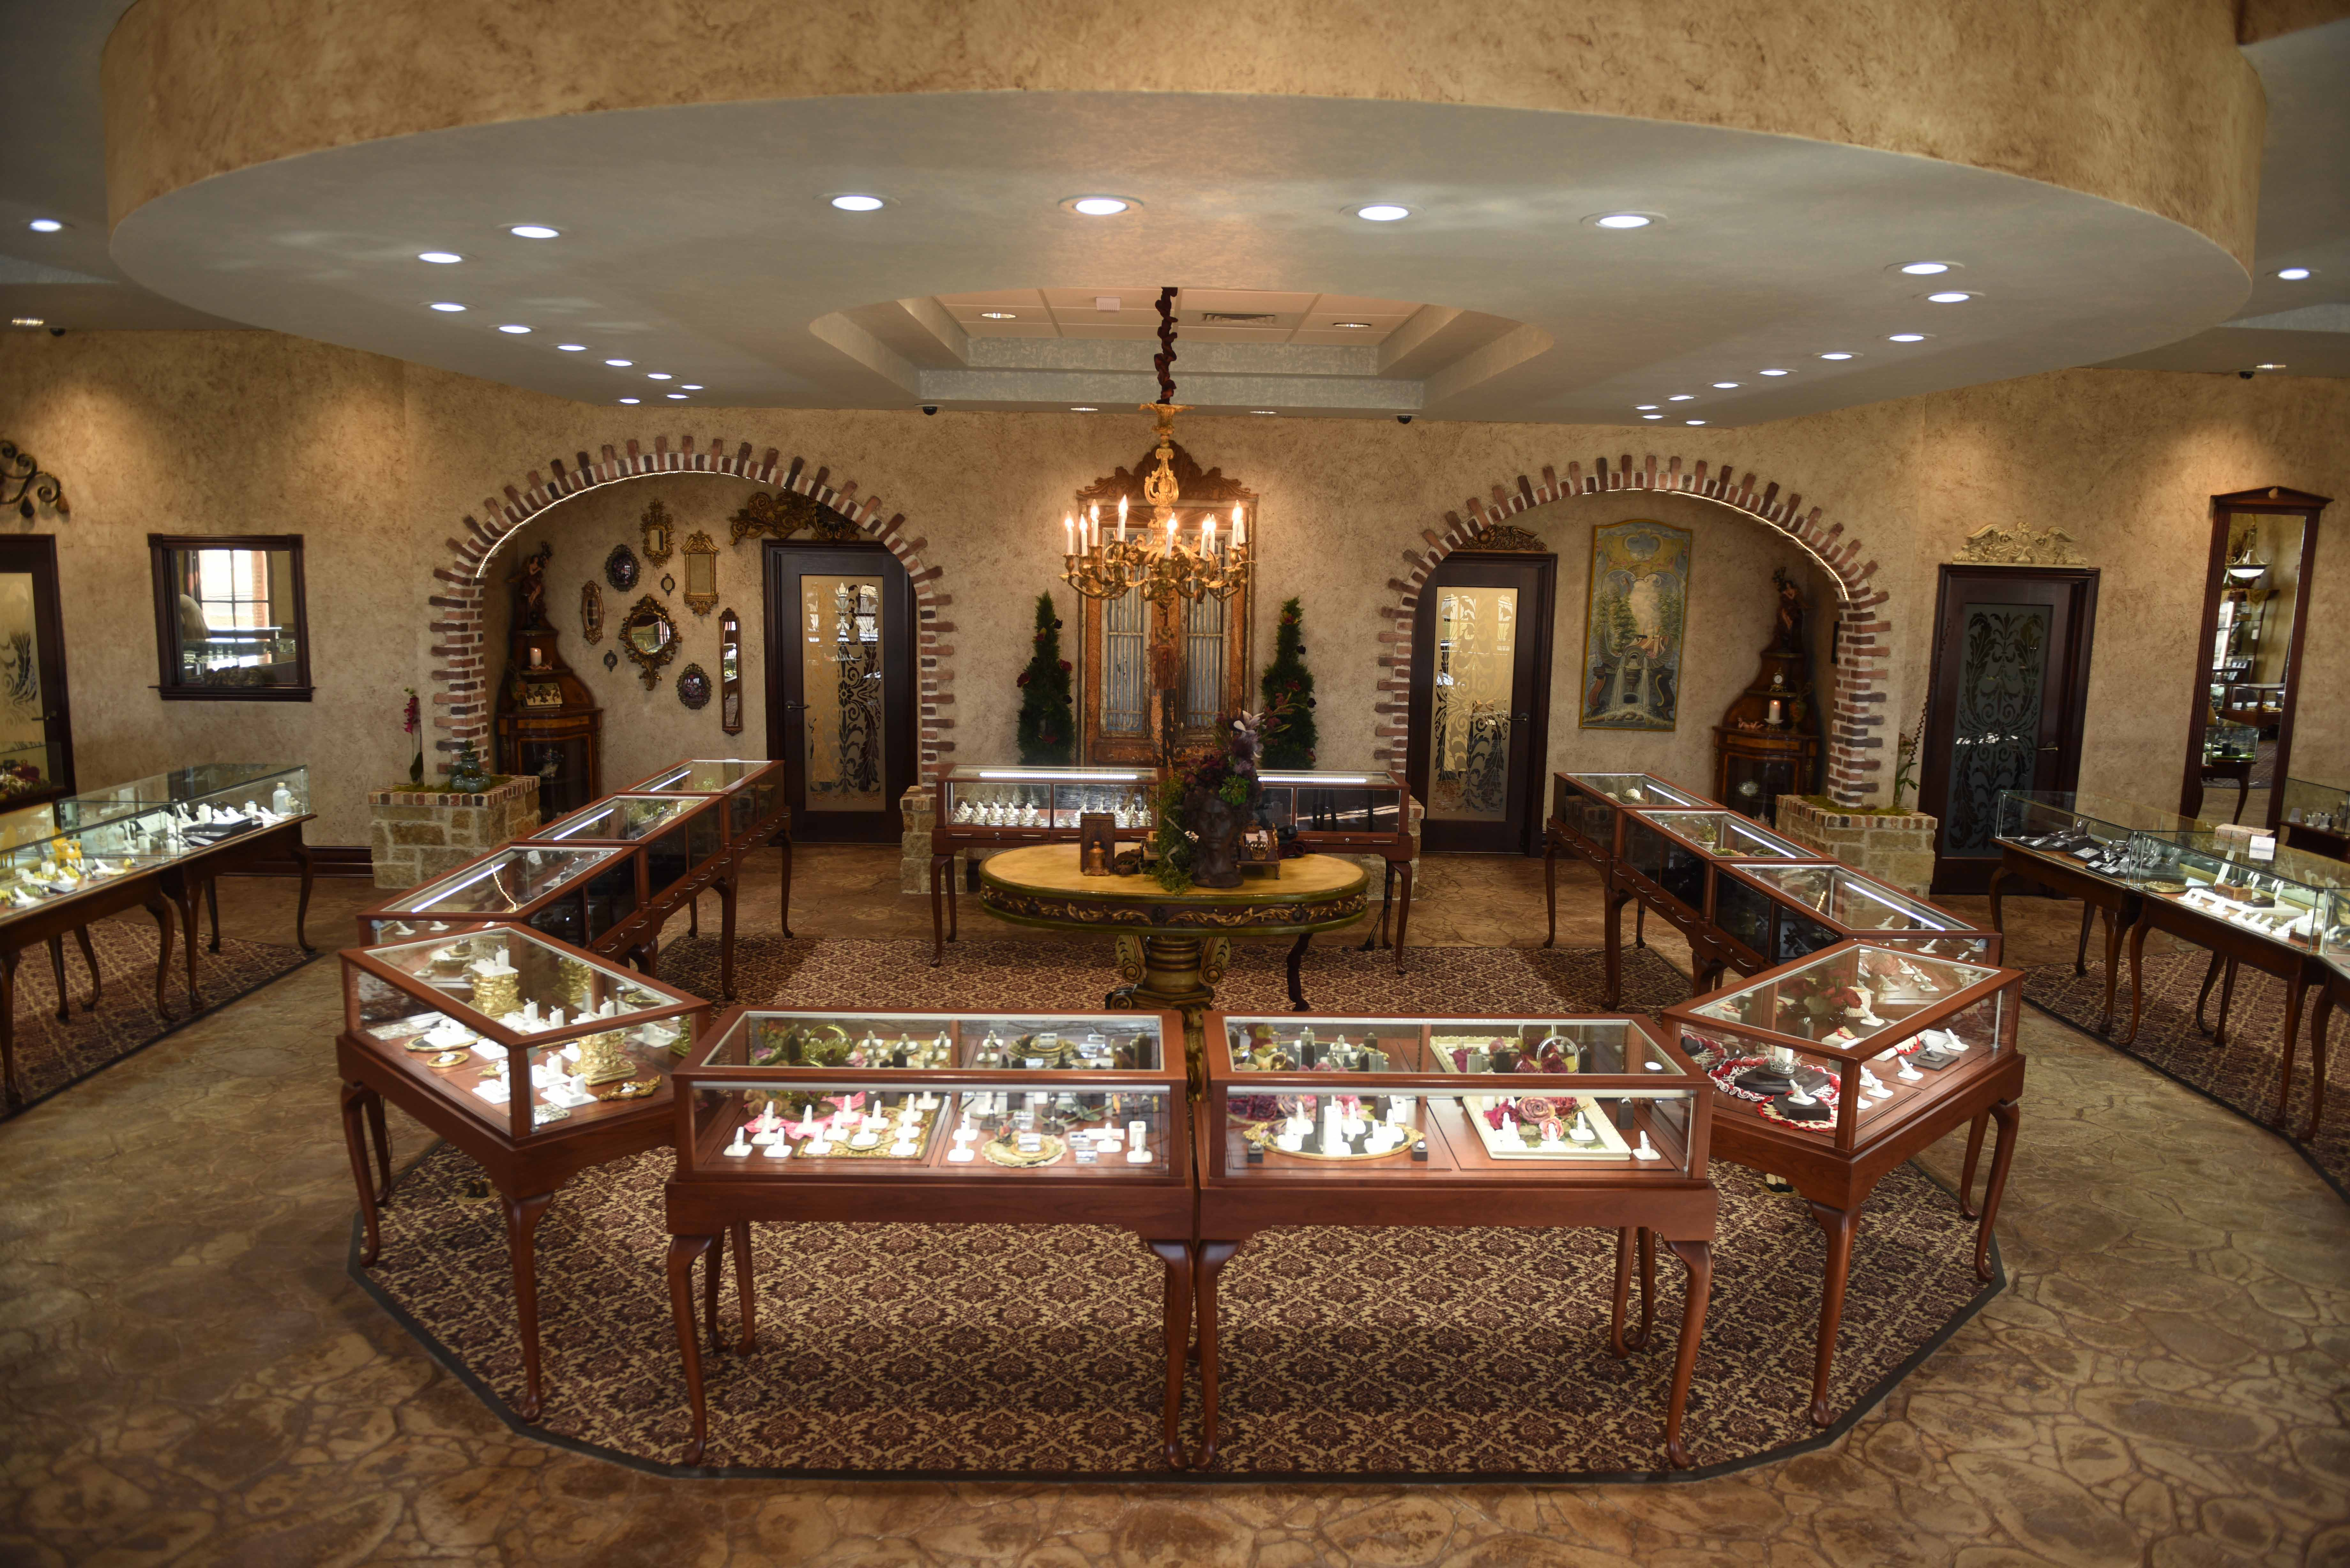 Queen Anne Wooden Jewelry Display Cases in store